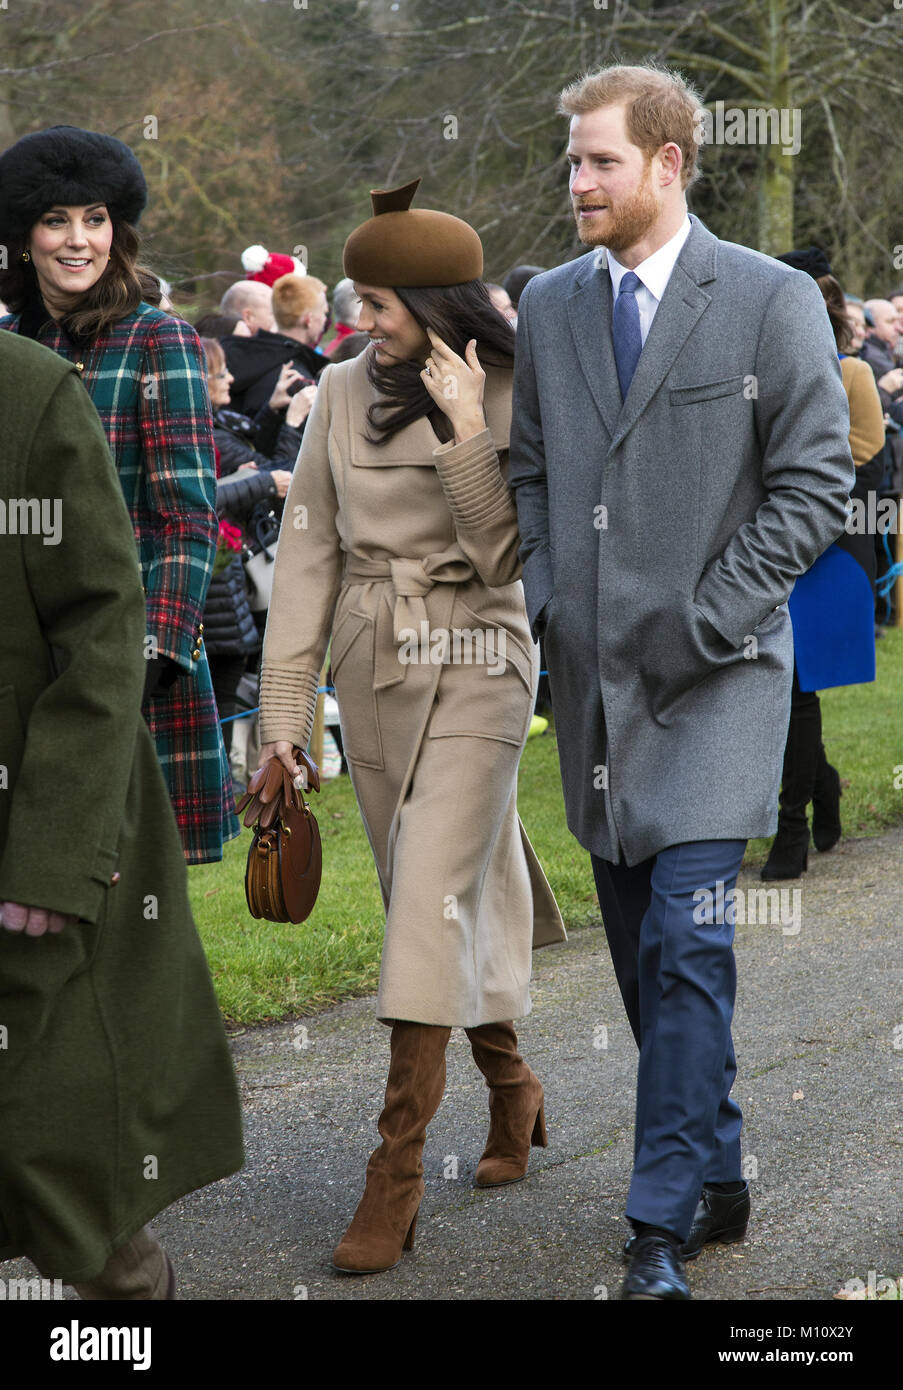 The British Royal family arrive at Sandringham to celebrate Christmas Day  Featuring: Catherine, Duchess of Cambridge, - Stock Image